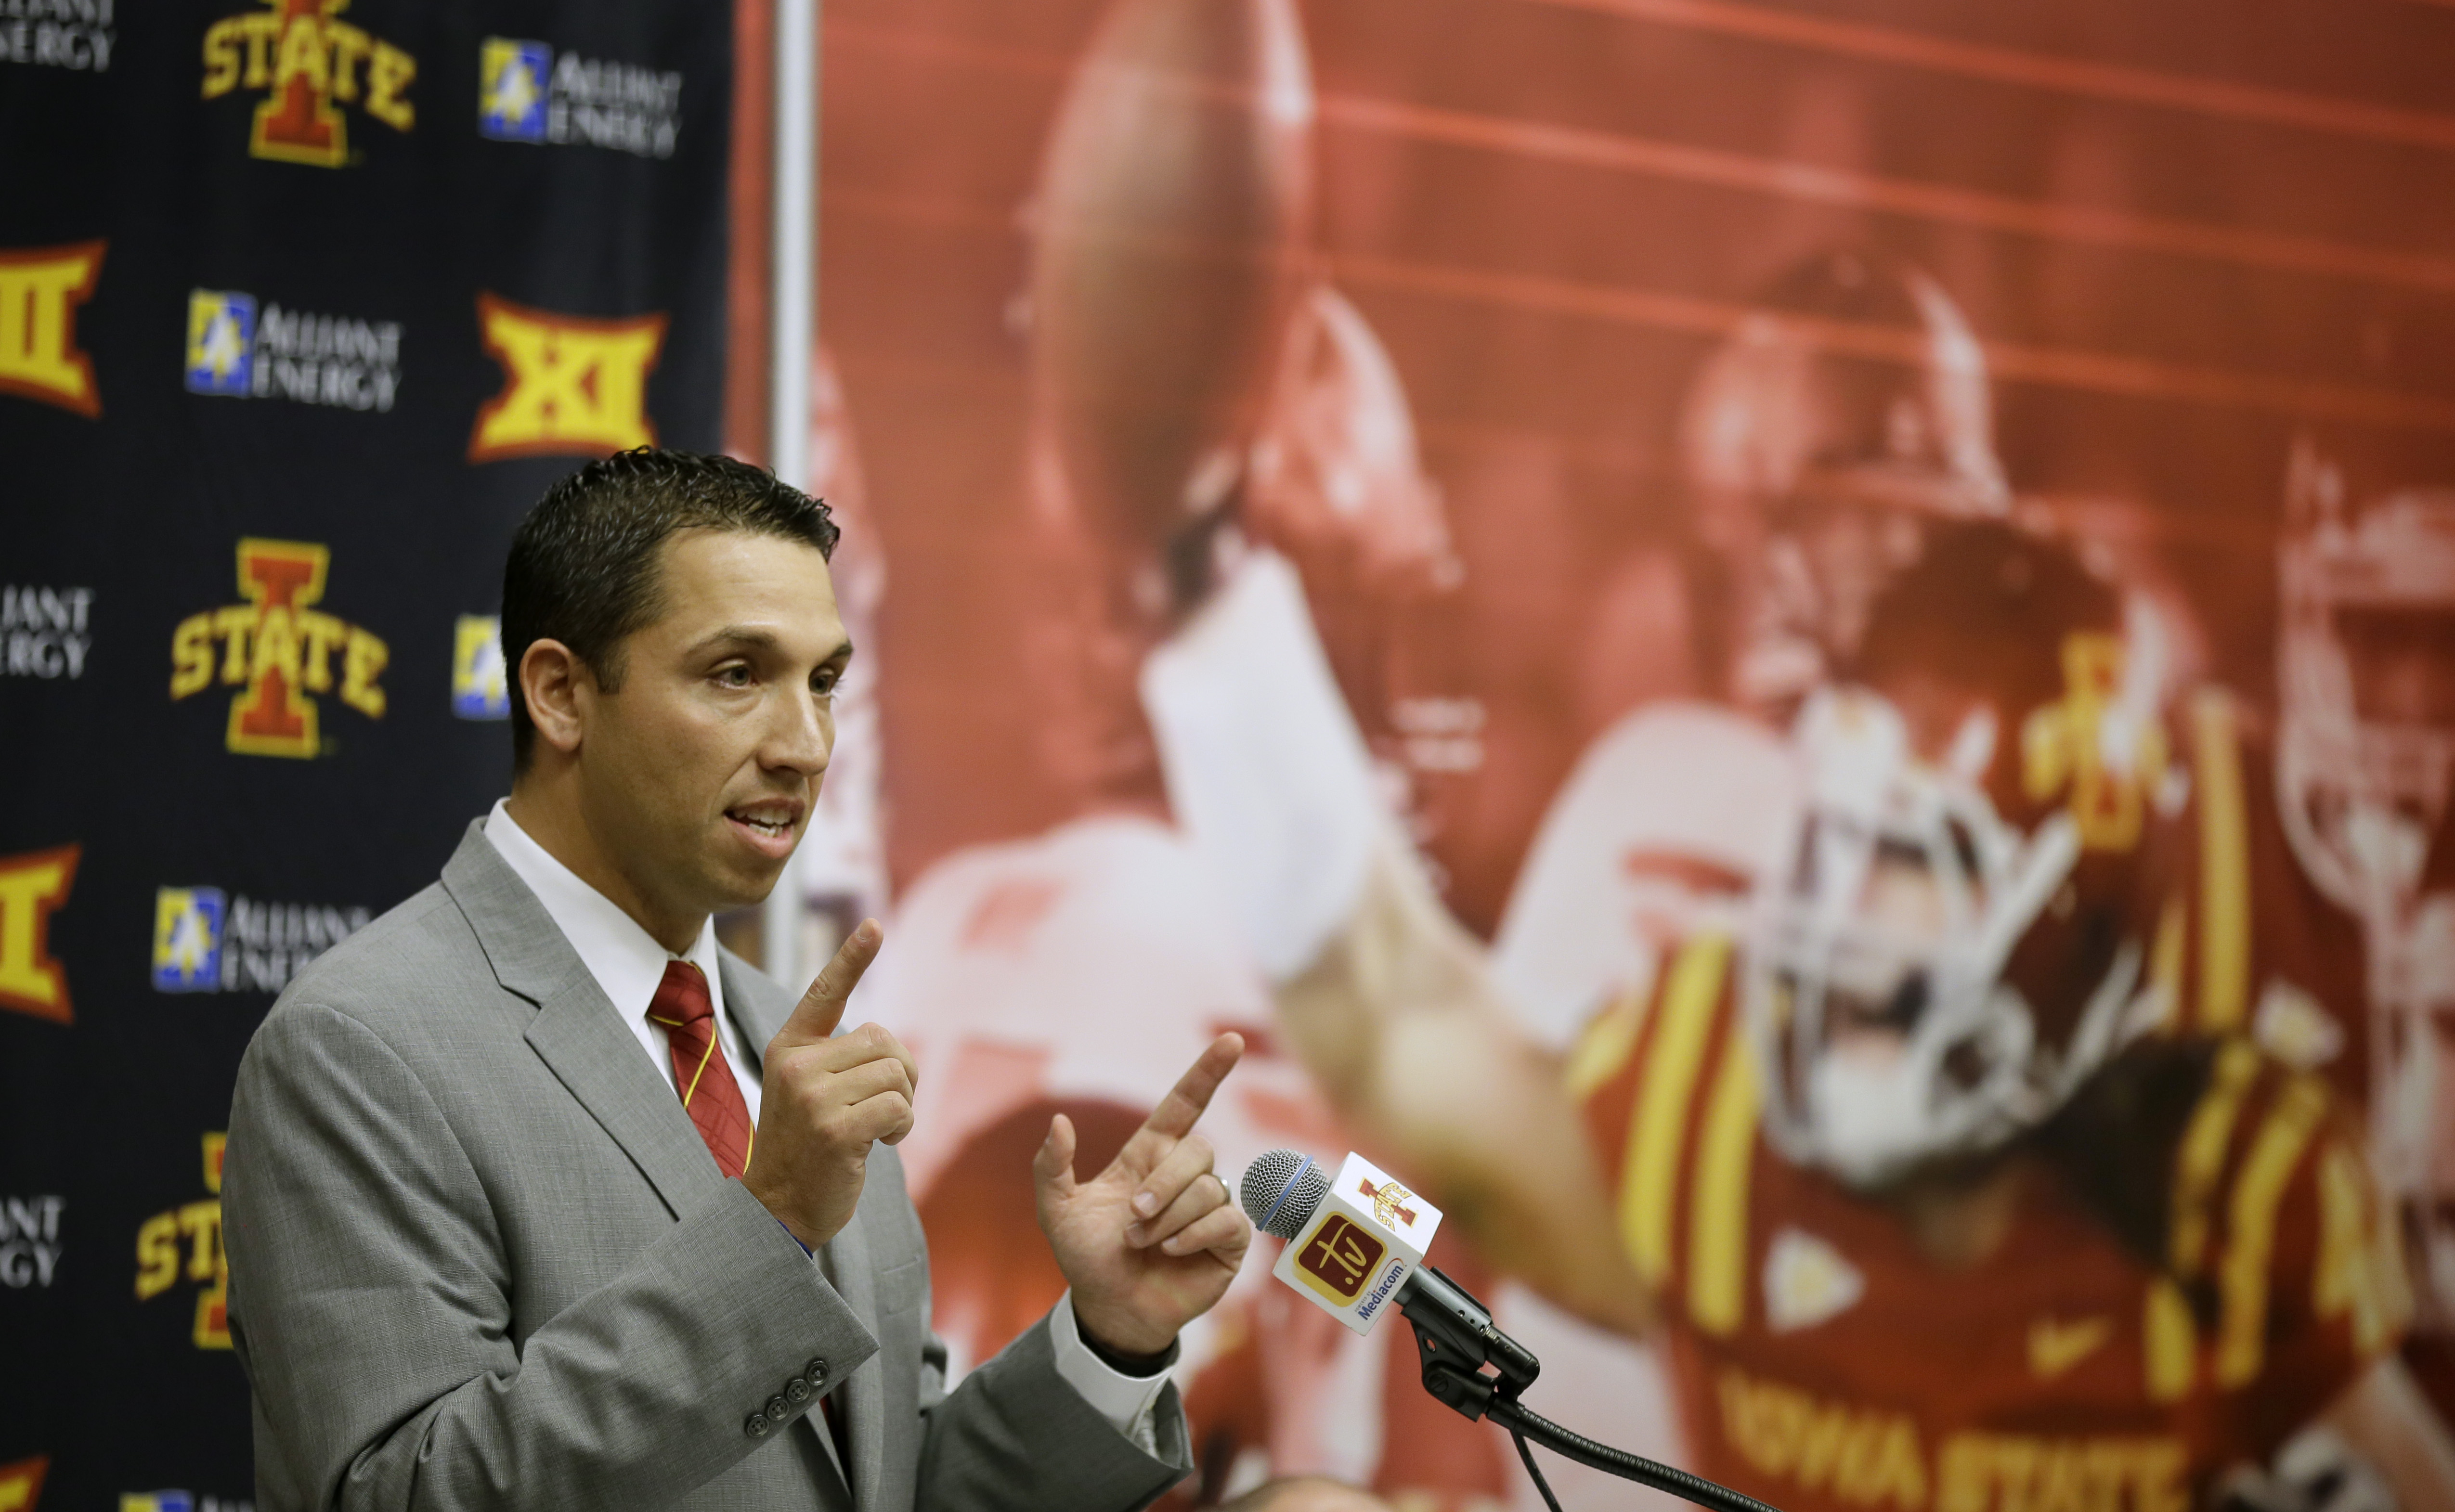 New Iowa State head football coach Matt Campbell speaks during a news conference, Monday, Nov. 30, 2015, in Ames, Iowa. Campbell, who replaces the recently fired Paul Rhoads, was the coach at Toledo this past season. (AP Photo/Charlie Neibergall)